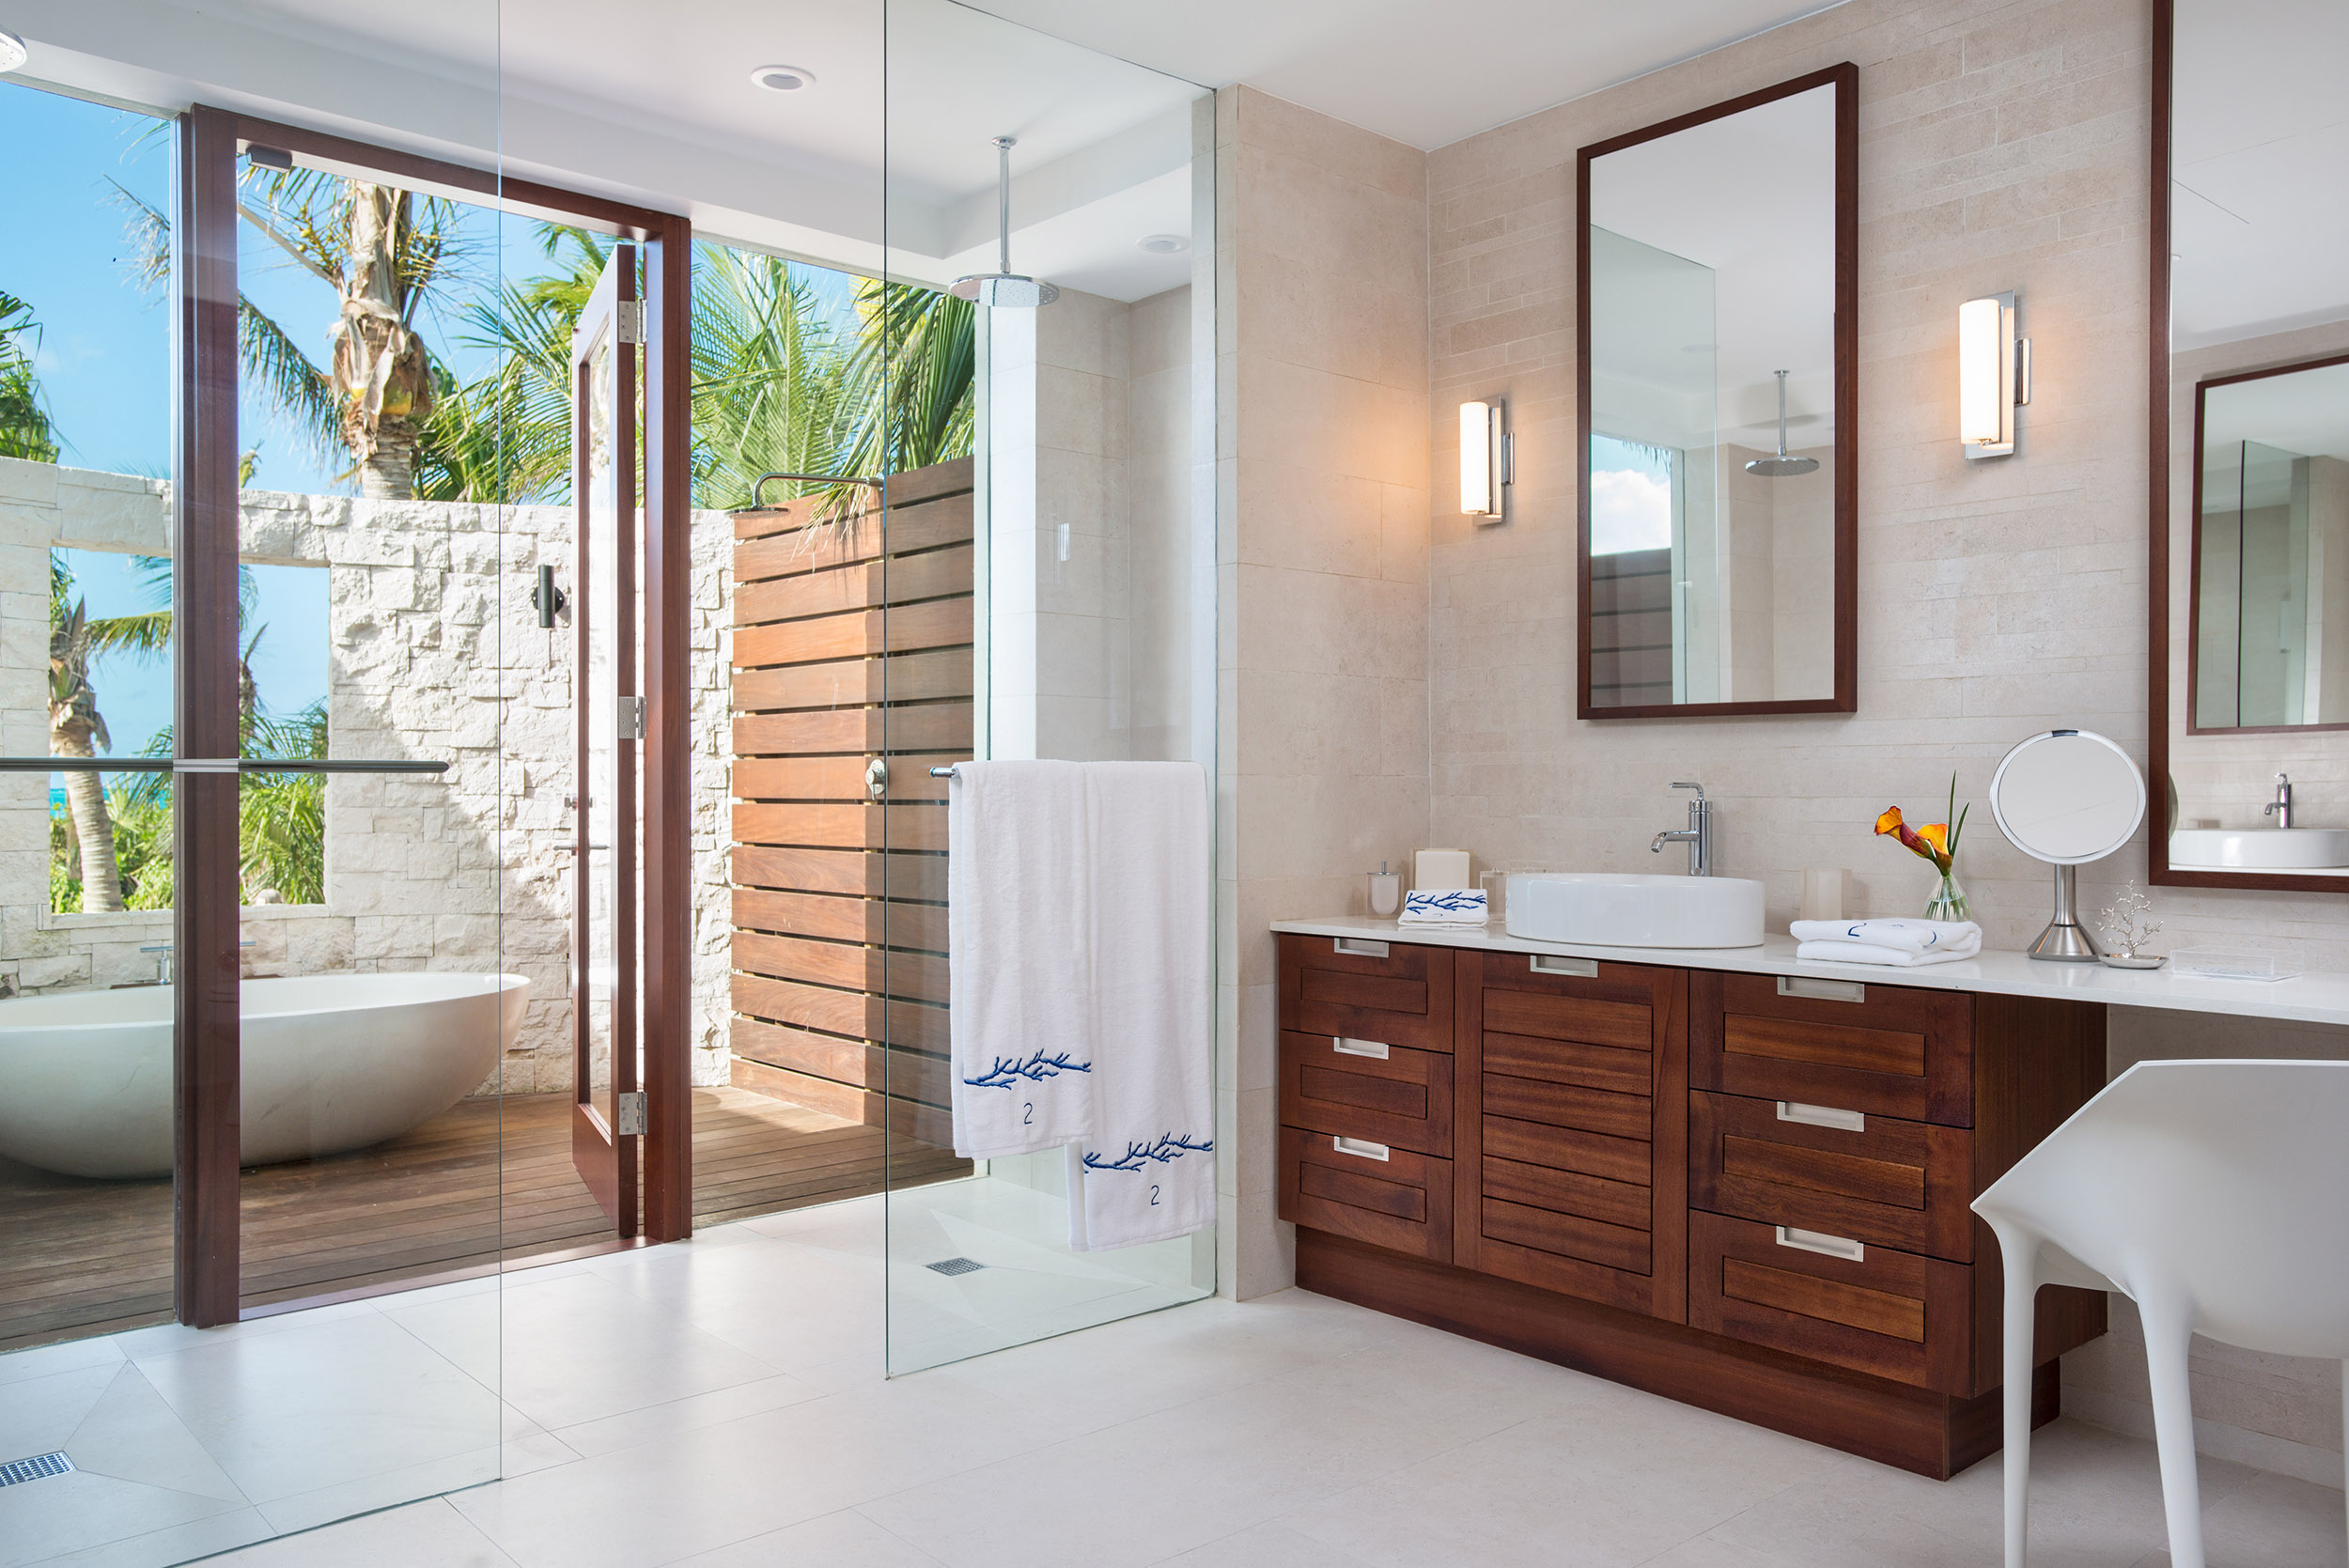 Sentosa - view of one of the bathrooms with outdoor bath tub